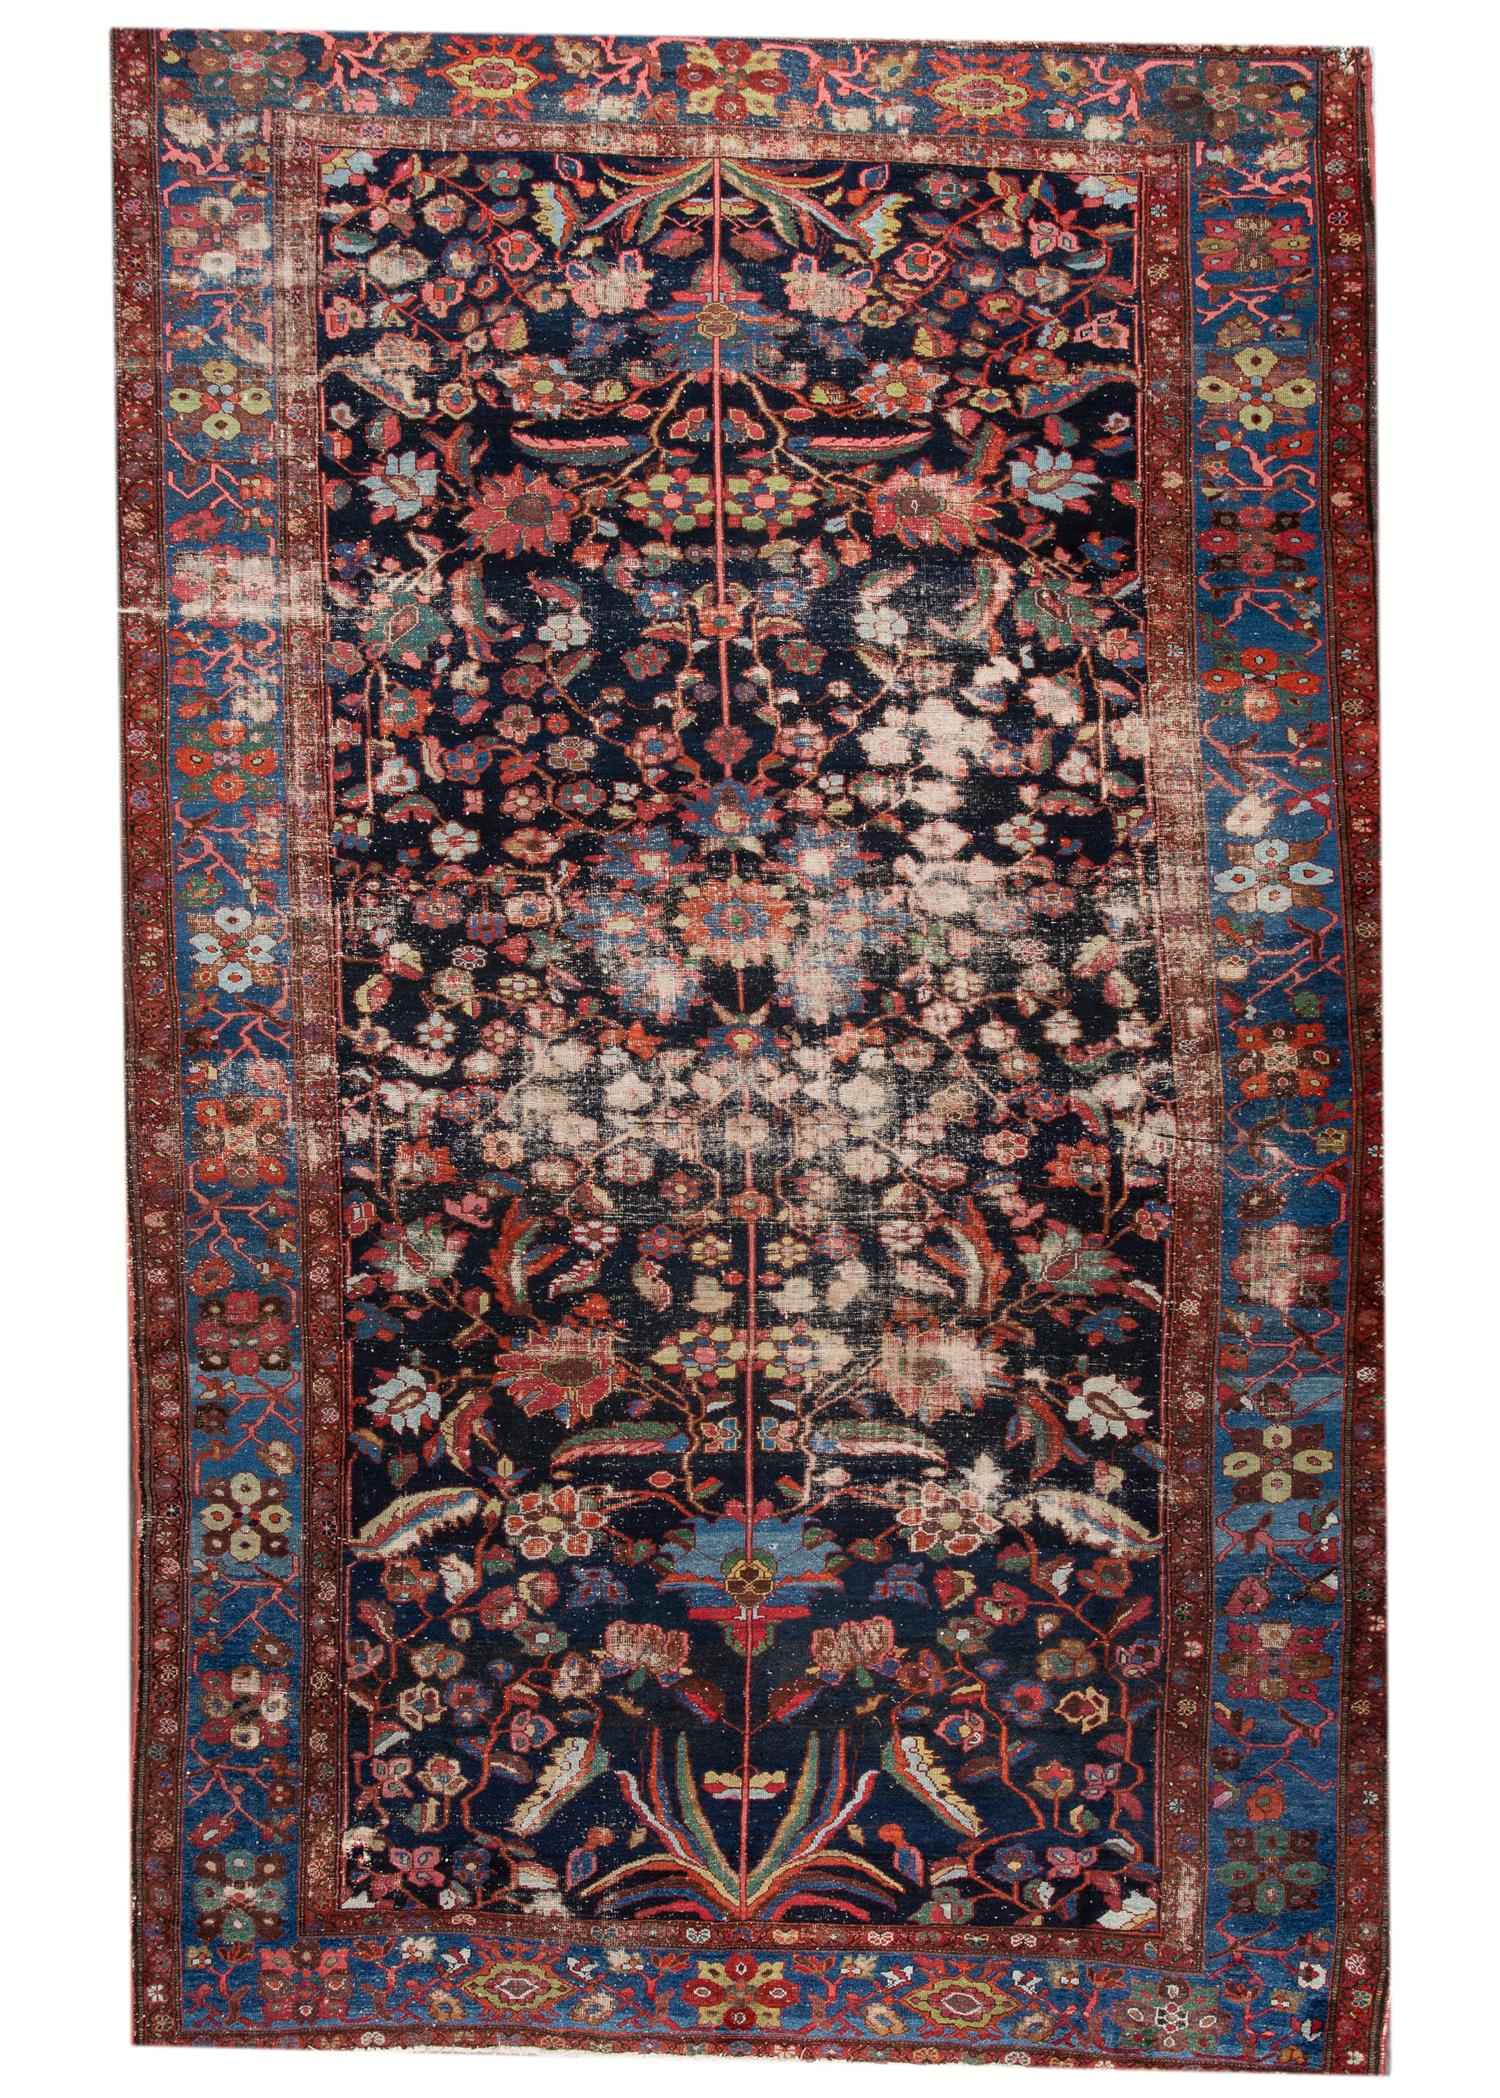 Antique Malayer Rug, 11X16